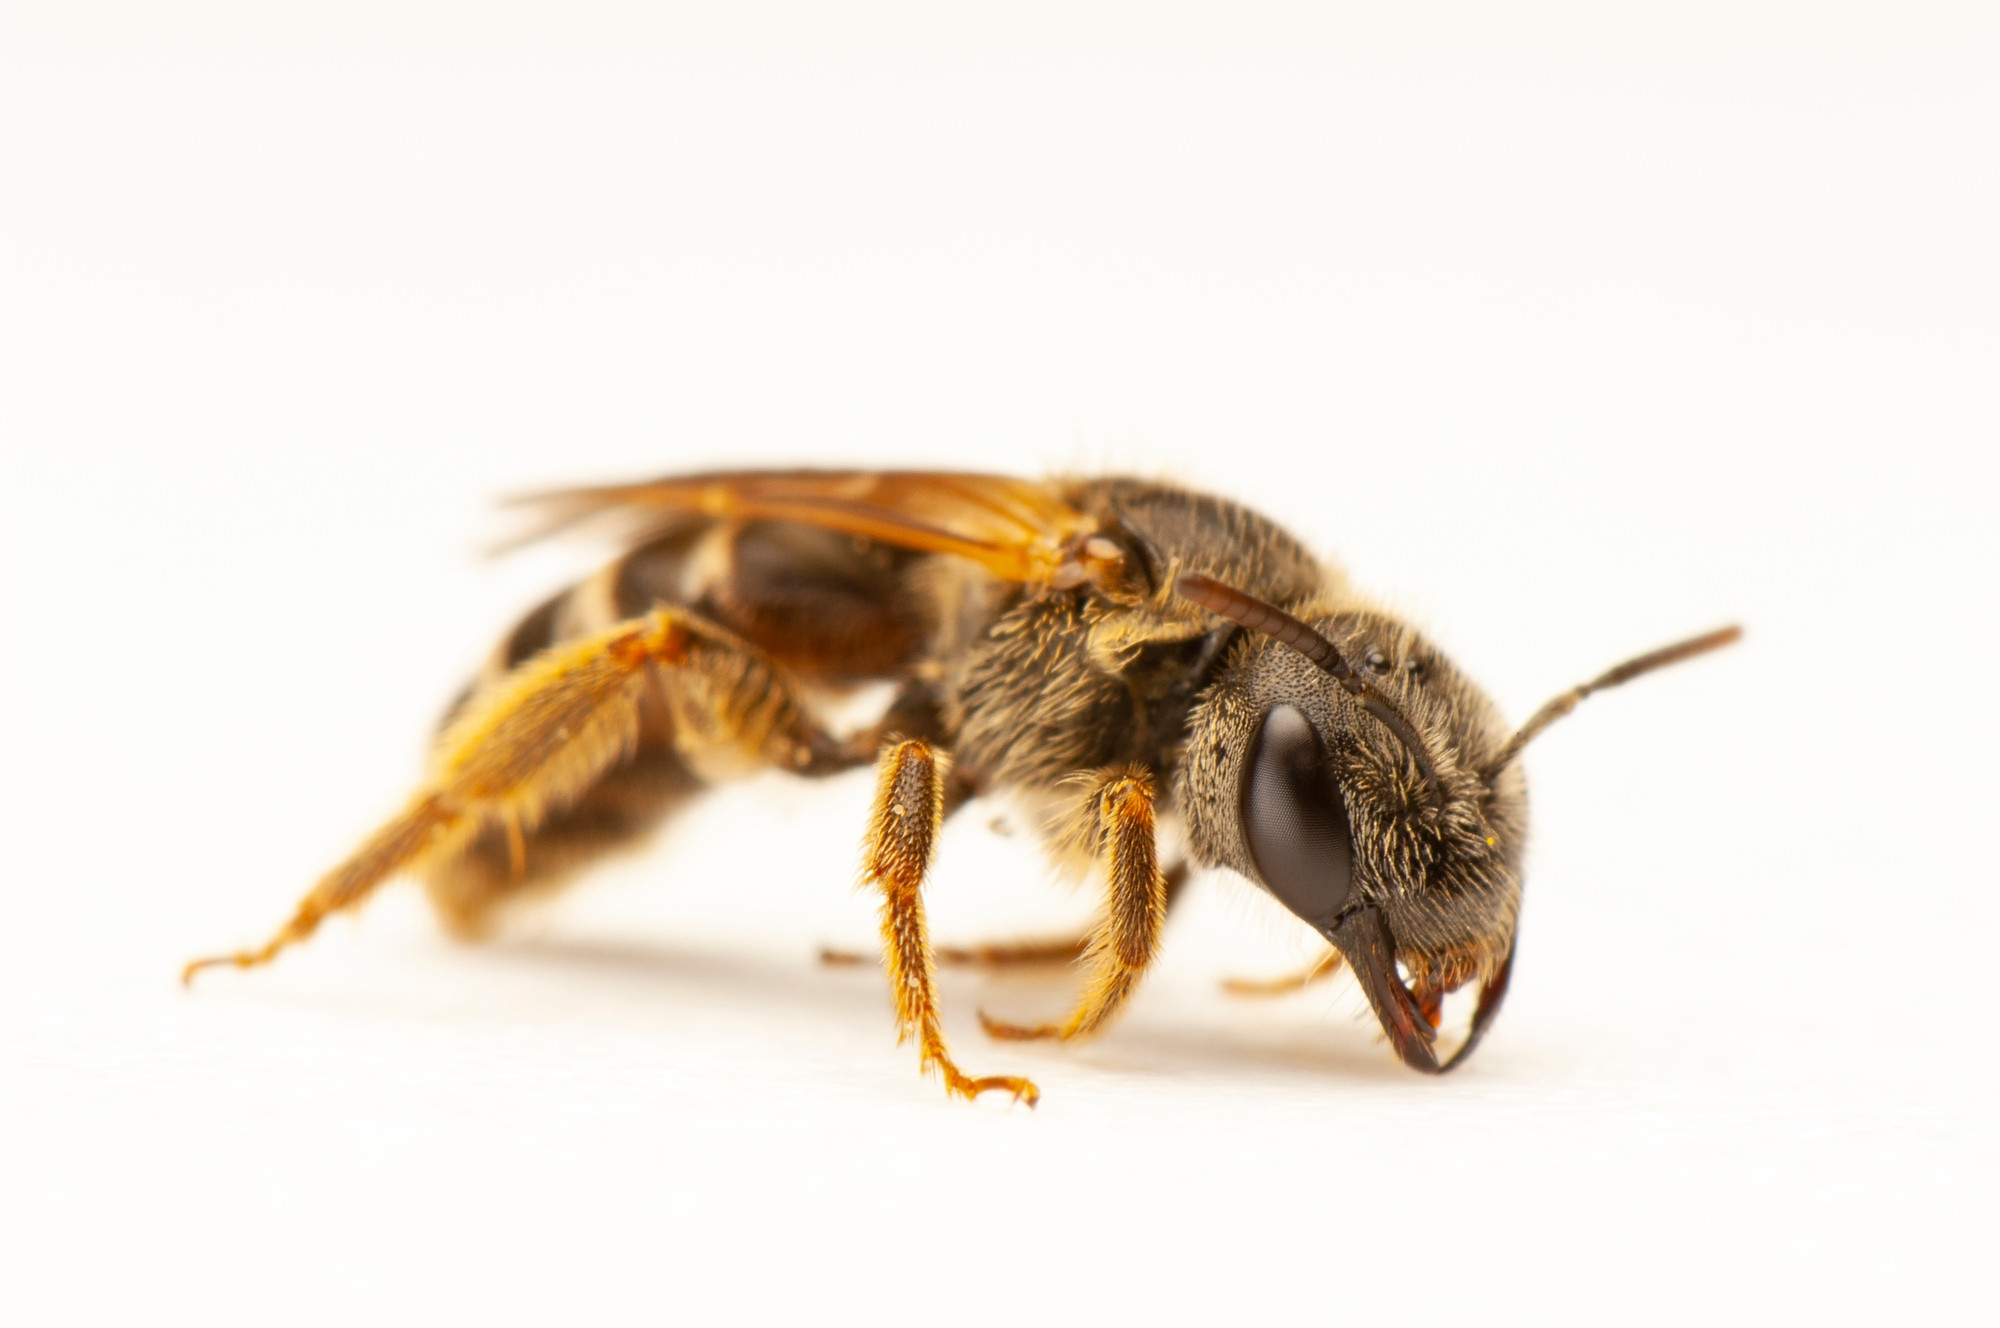 A long-horned bee (Halictus ligatus) photographed at a studio in Lincoln, NE.